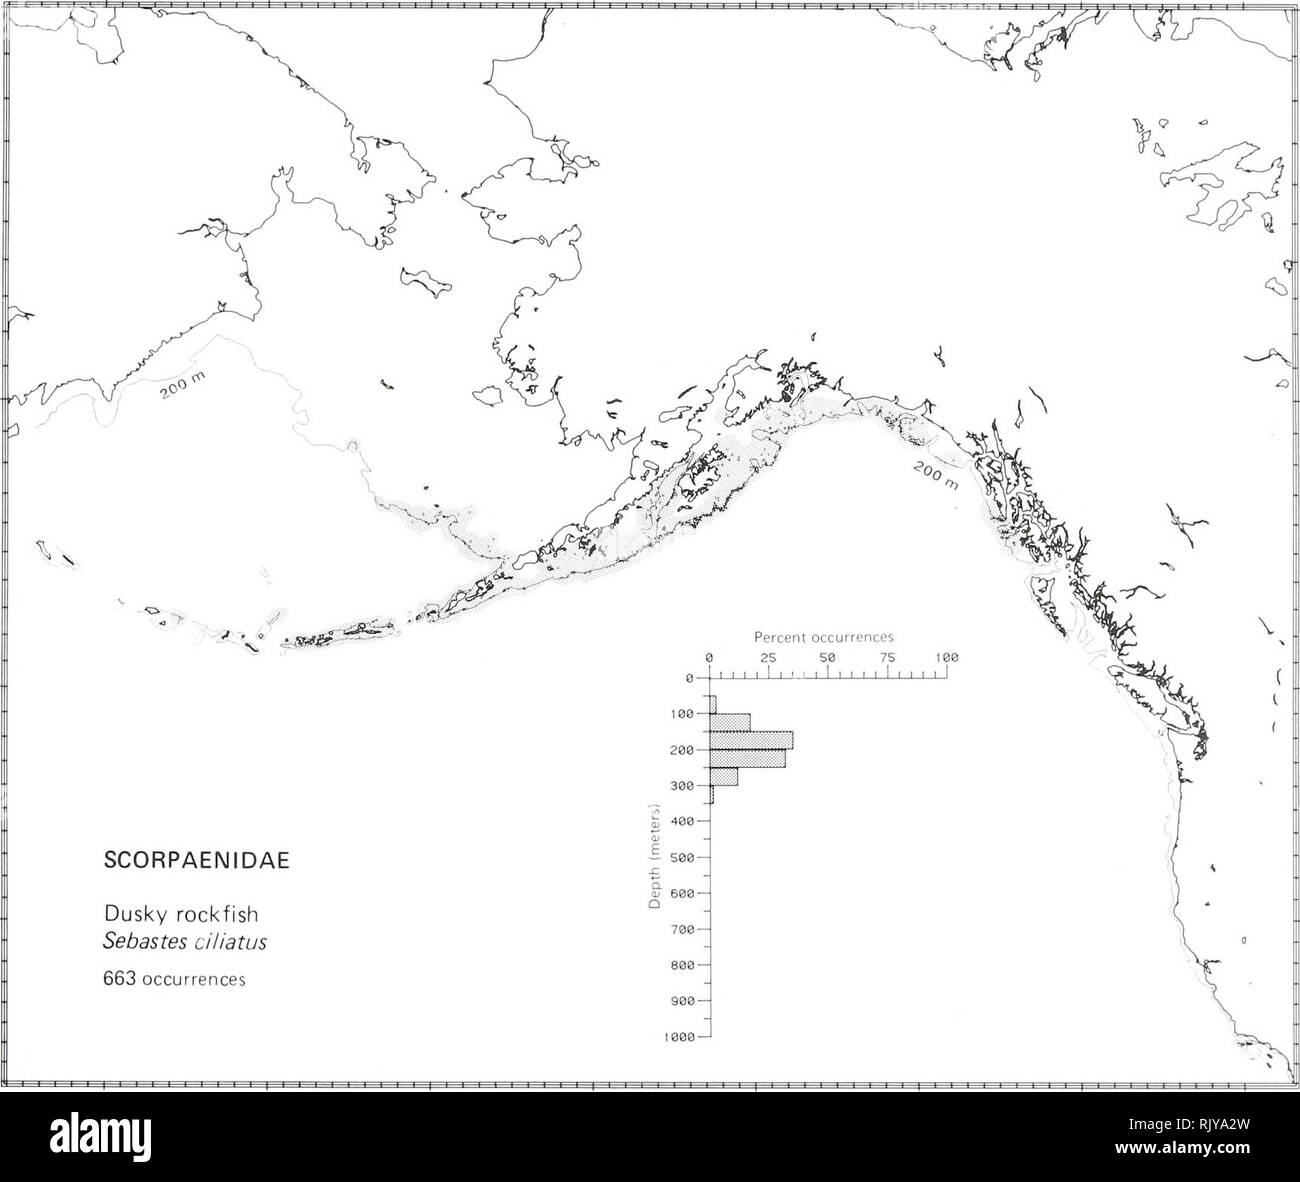 Atlas and zoogeography of common fishes in the Bering Sea